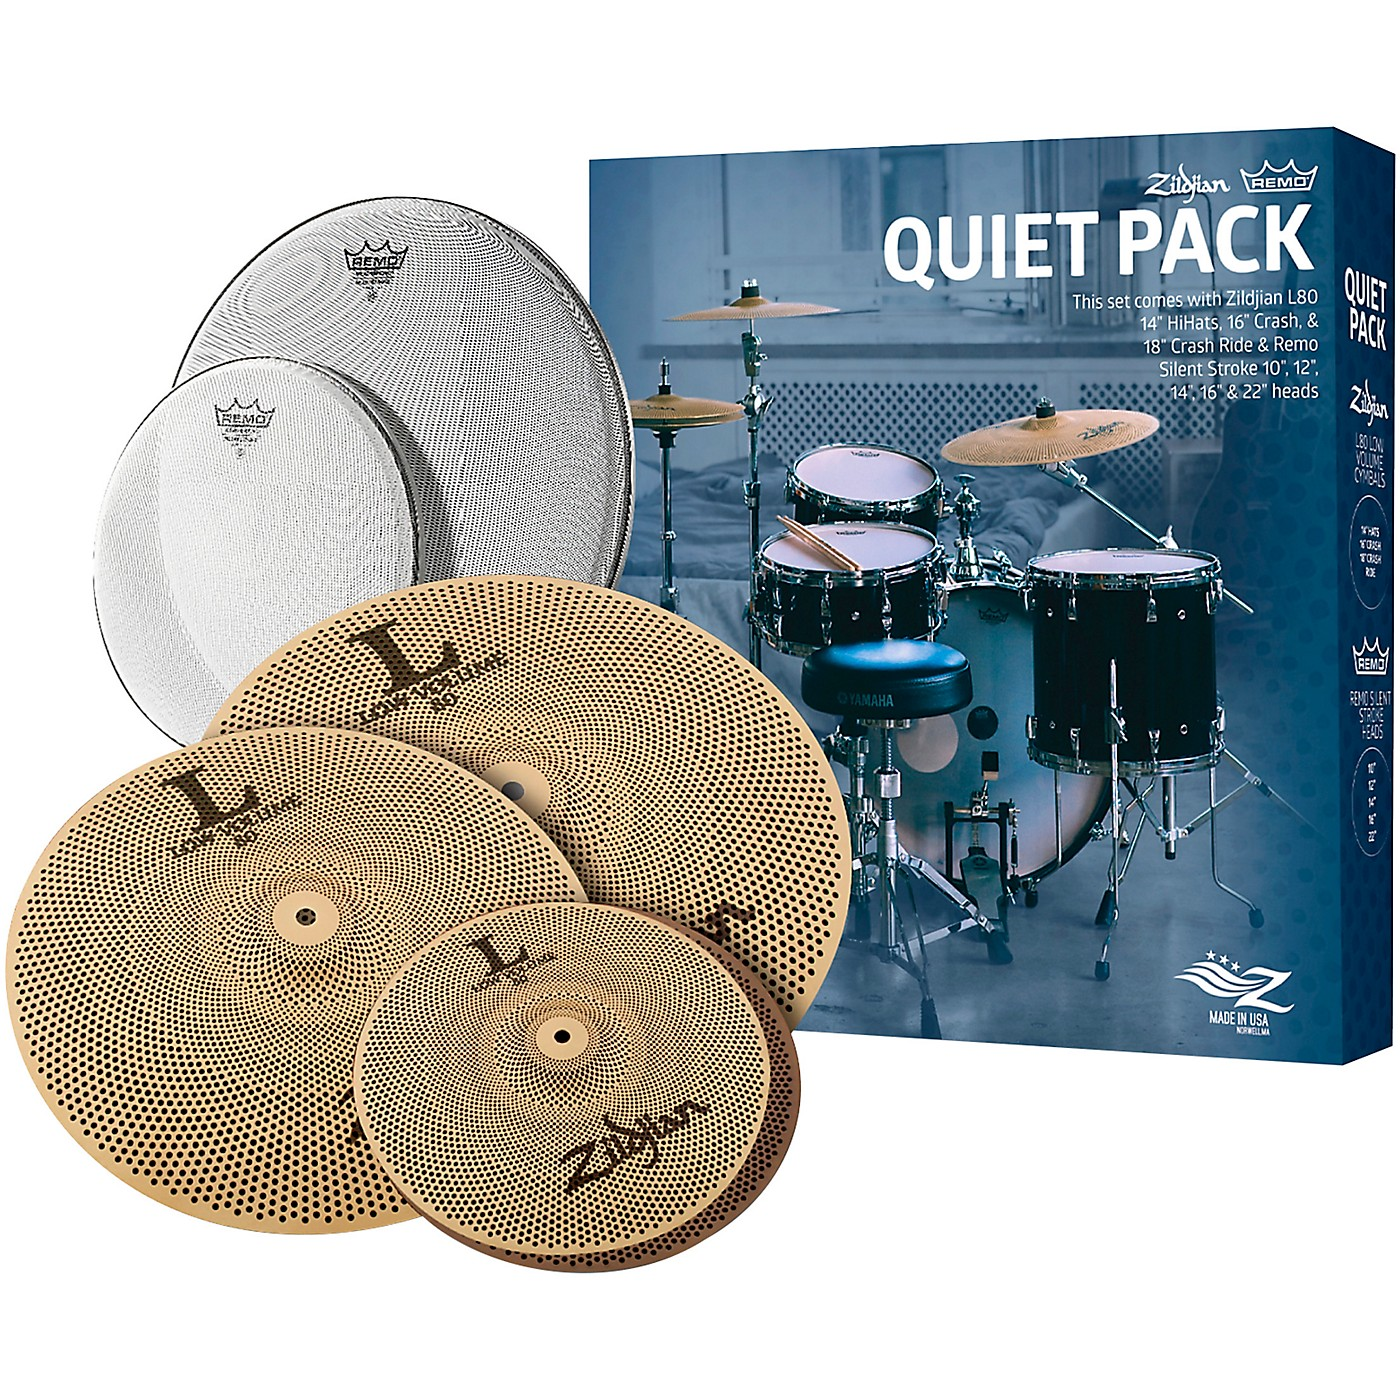 Zildjian LV468RH Low Volume Cymbal Pack with Remo Silentstroke Heads thumbnail